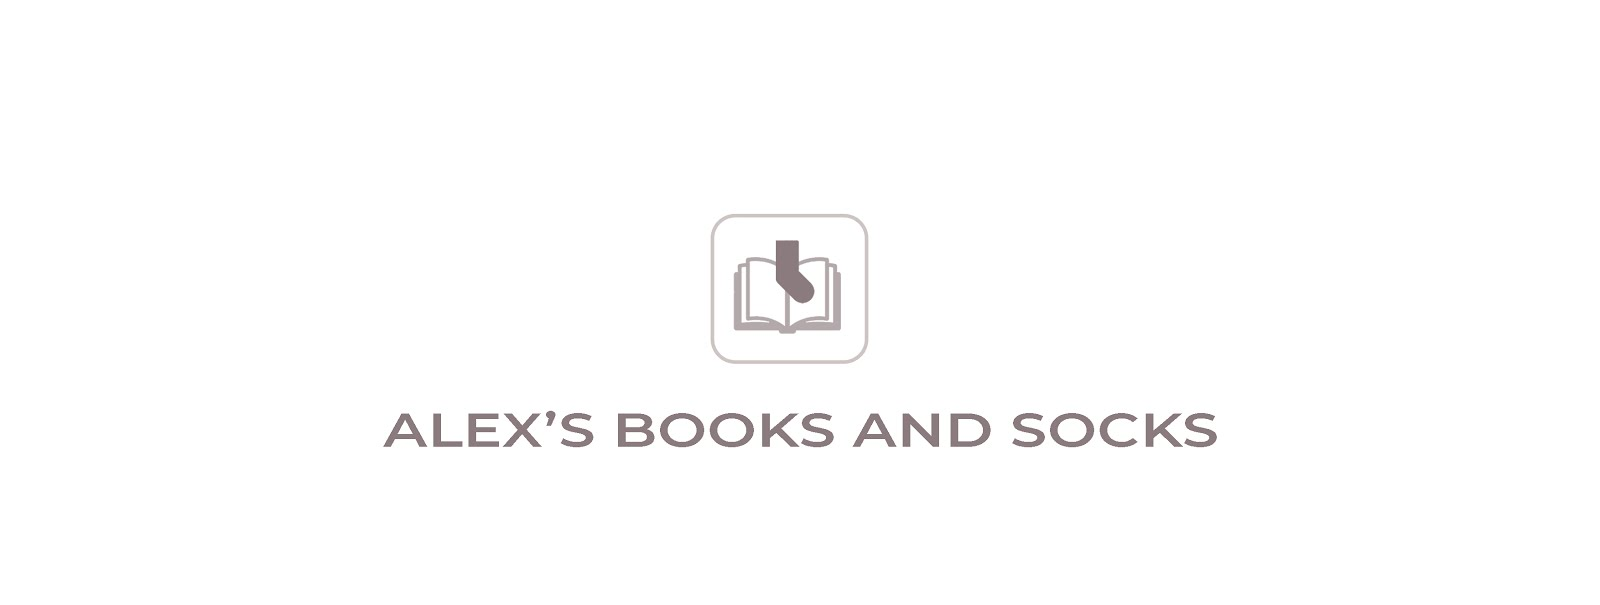 Alexs books and socks